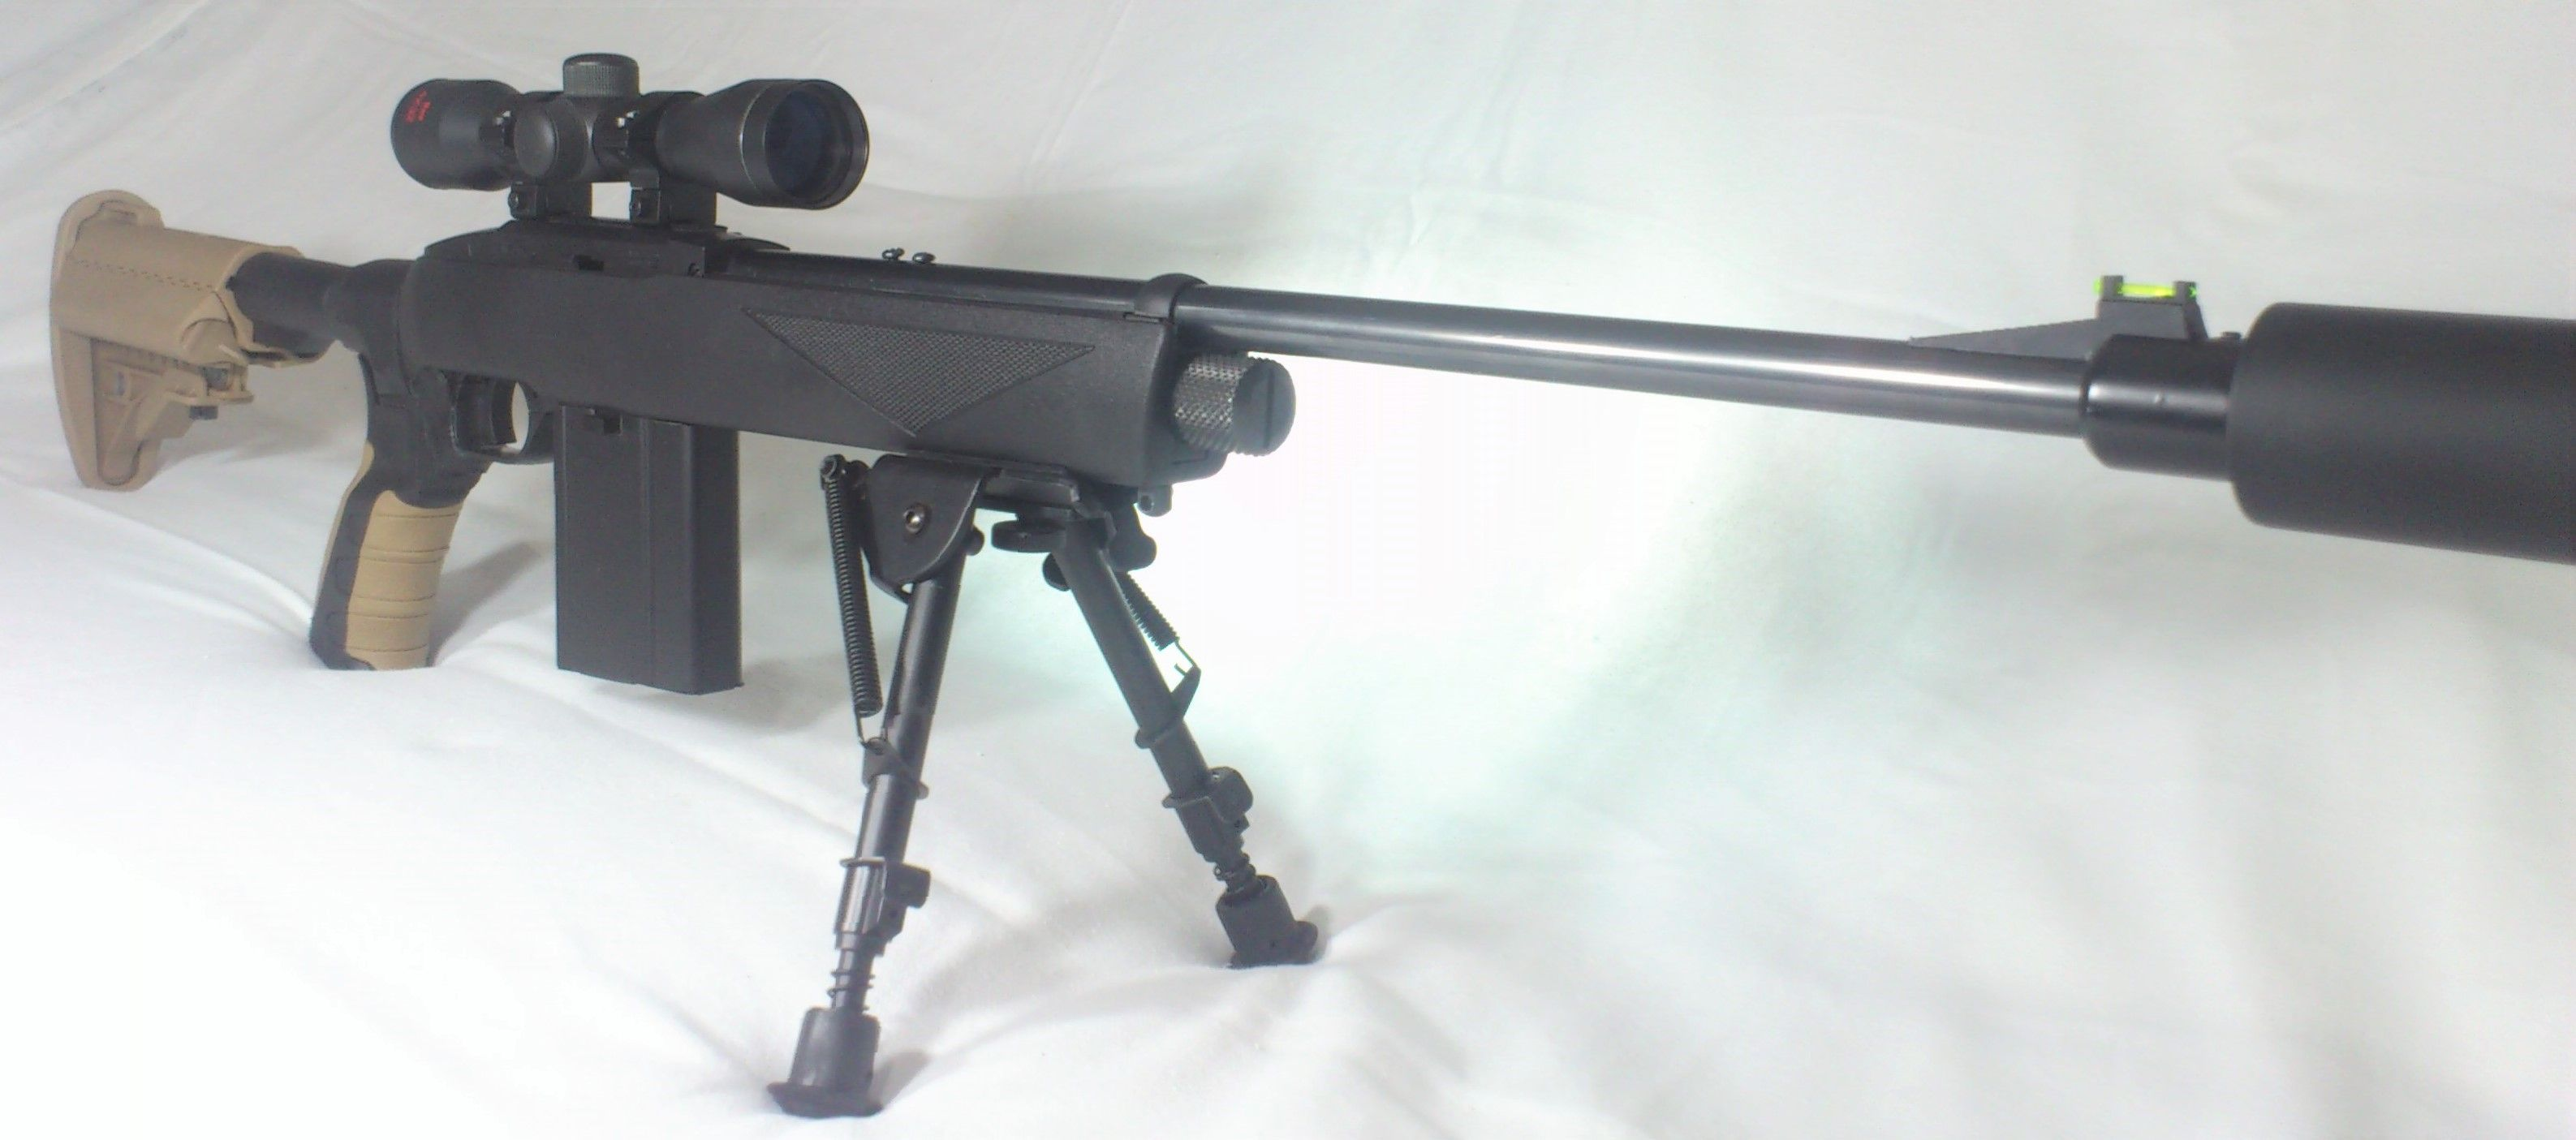 Crosman 1077 m4 stock | 1077 | Air rifle, Guns